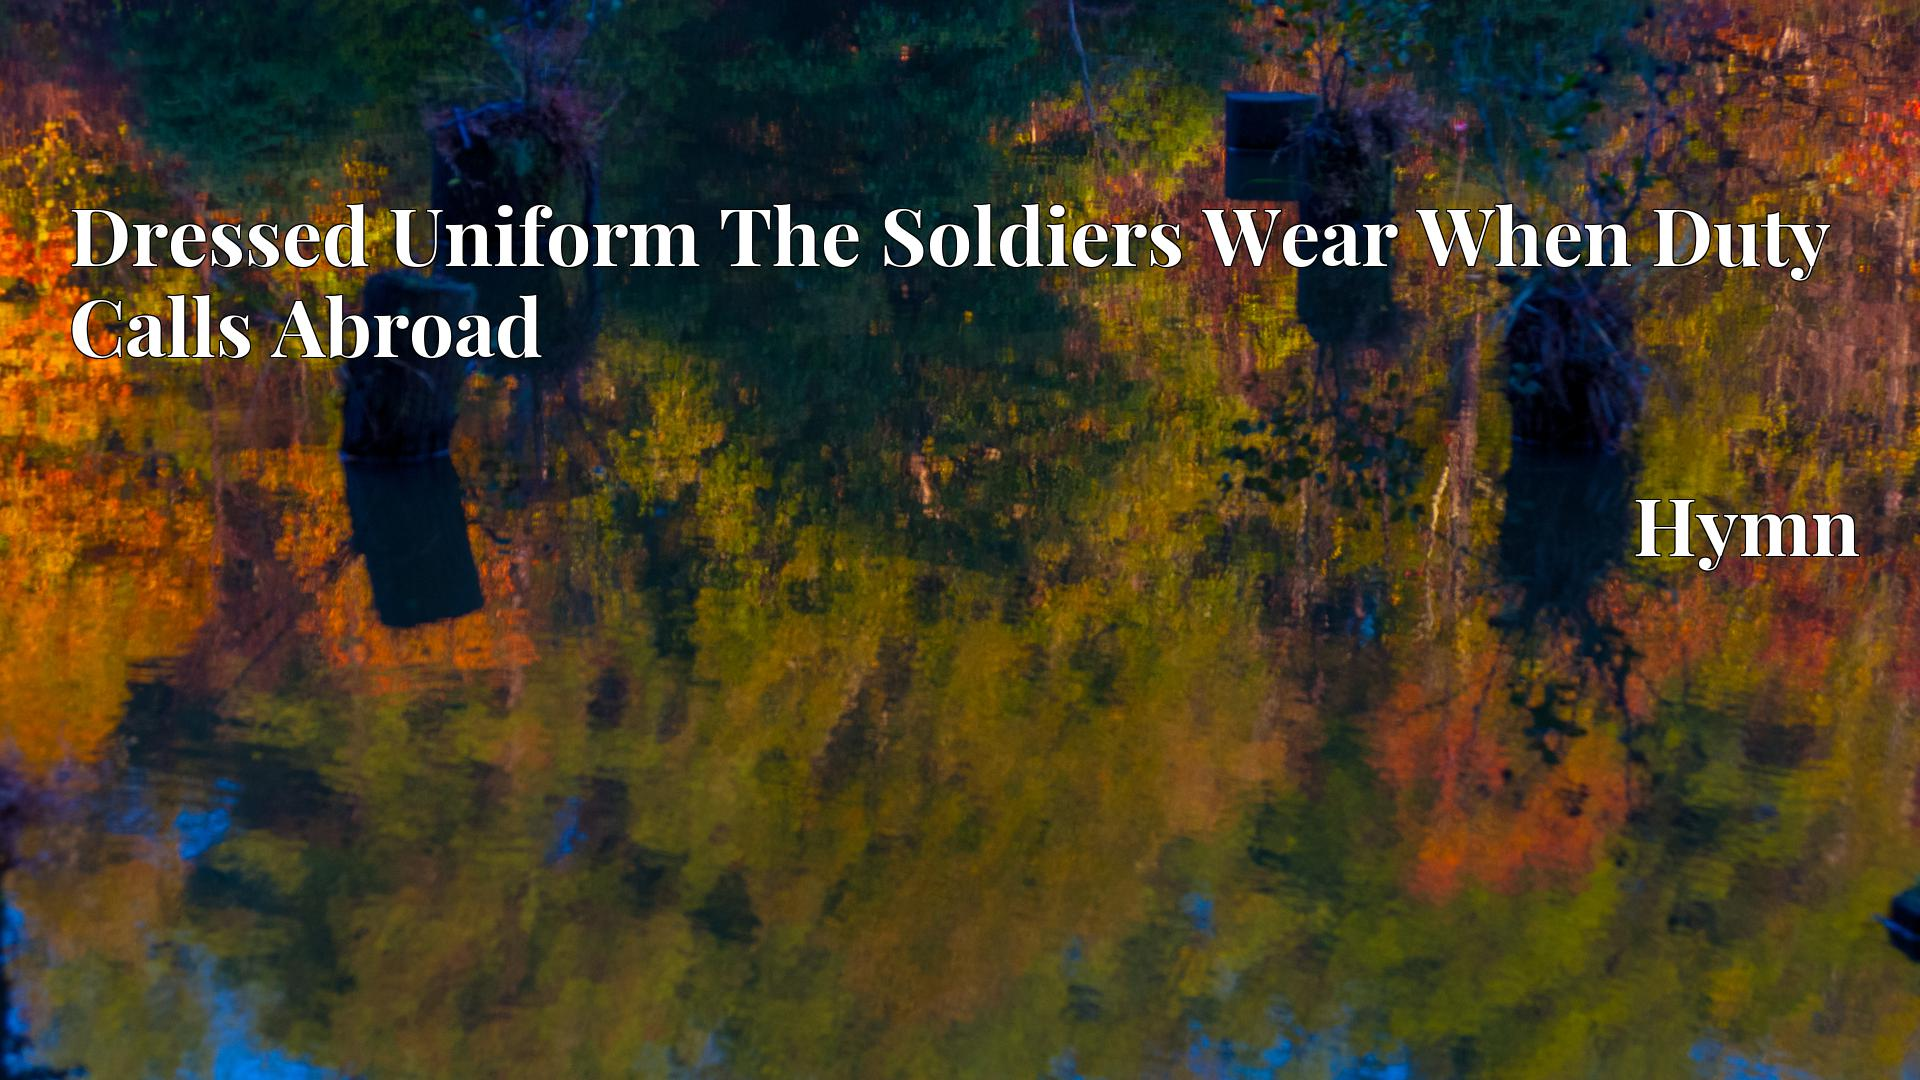 Dressed Uniform The Soldiers Wear When Duty Calls Abroad - Hymn